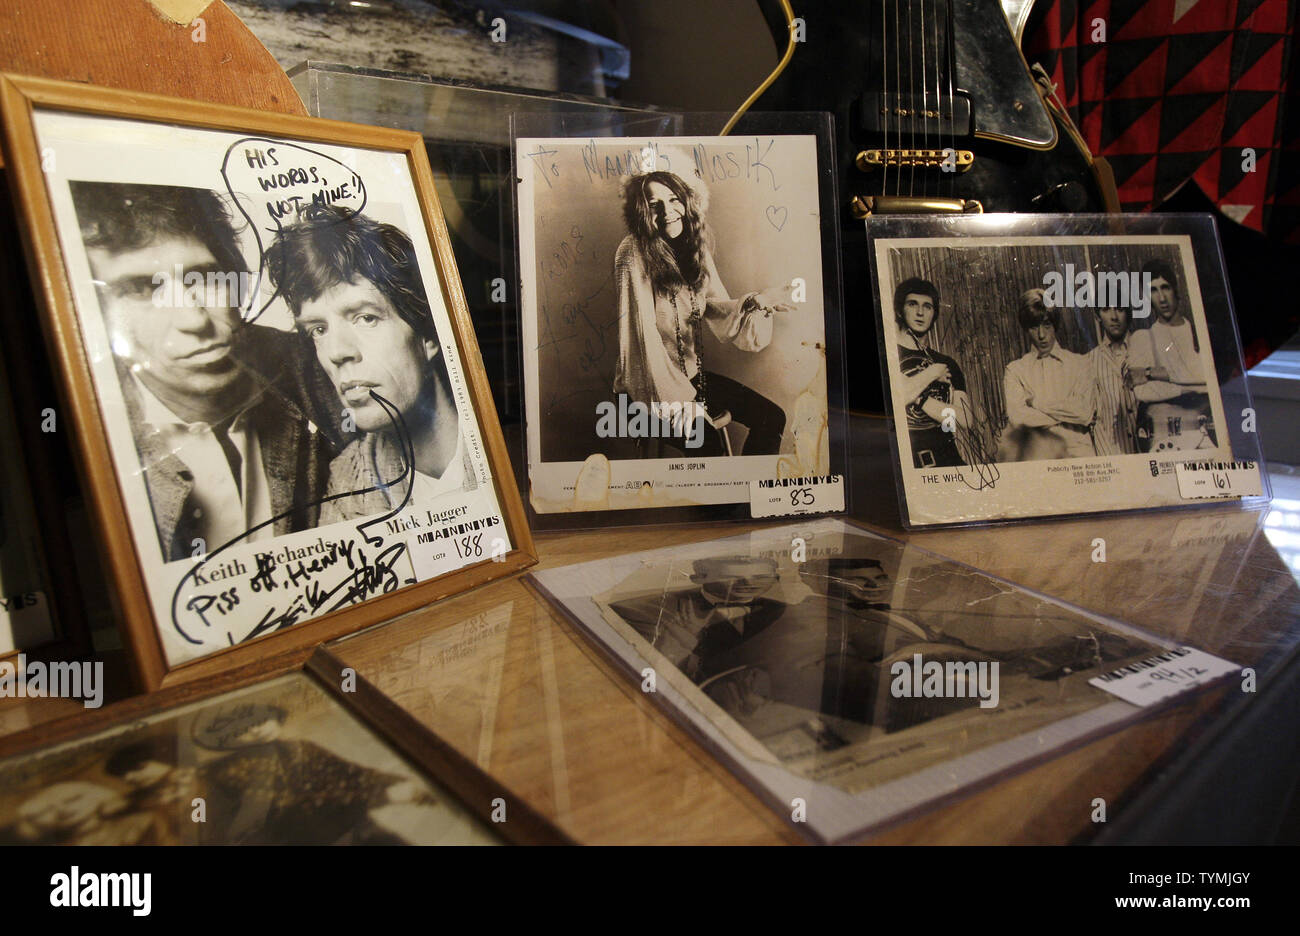 The Rolling Stones Pictures Stock Photos & The Rolling